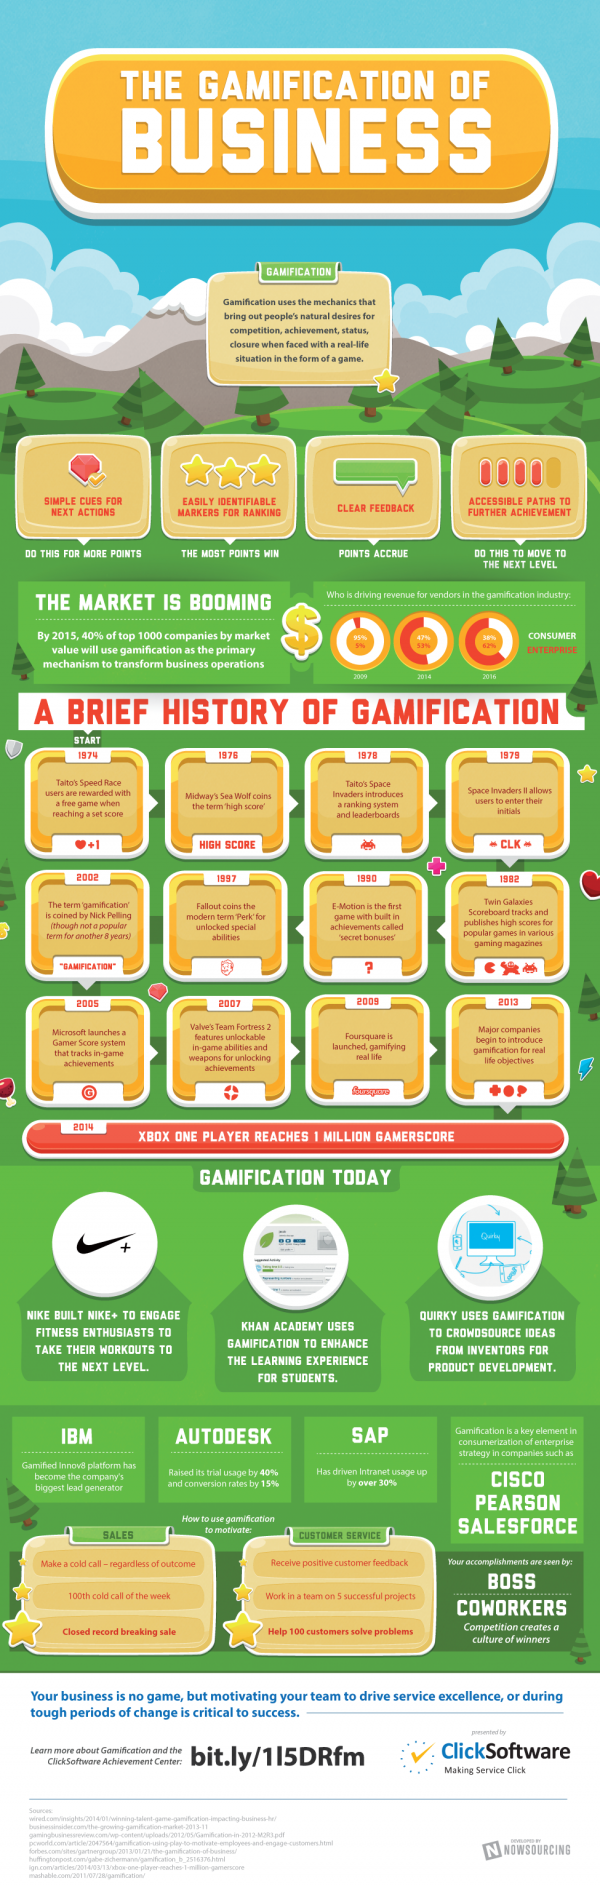 The Gamification of Business Infographic